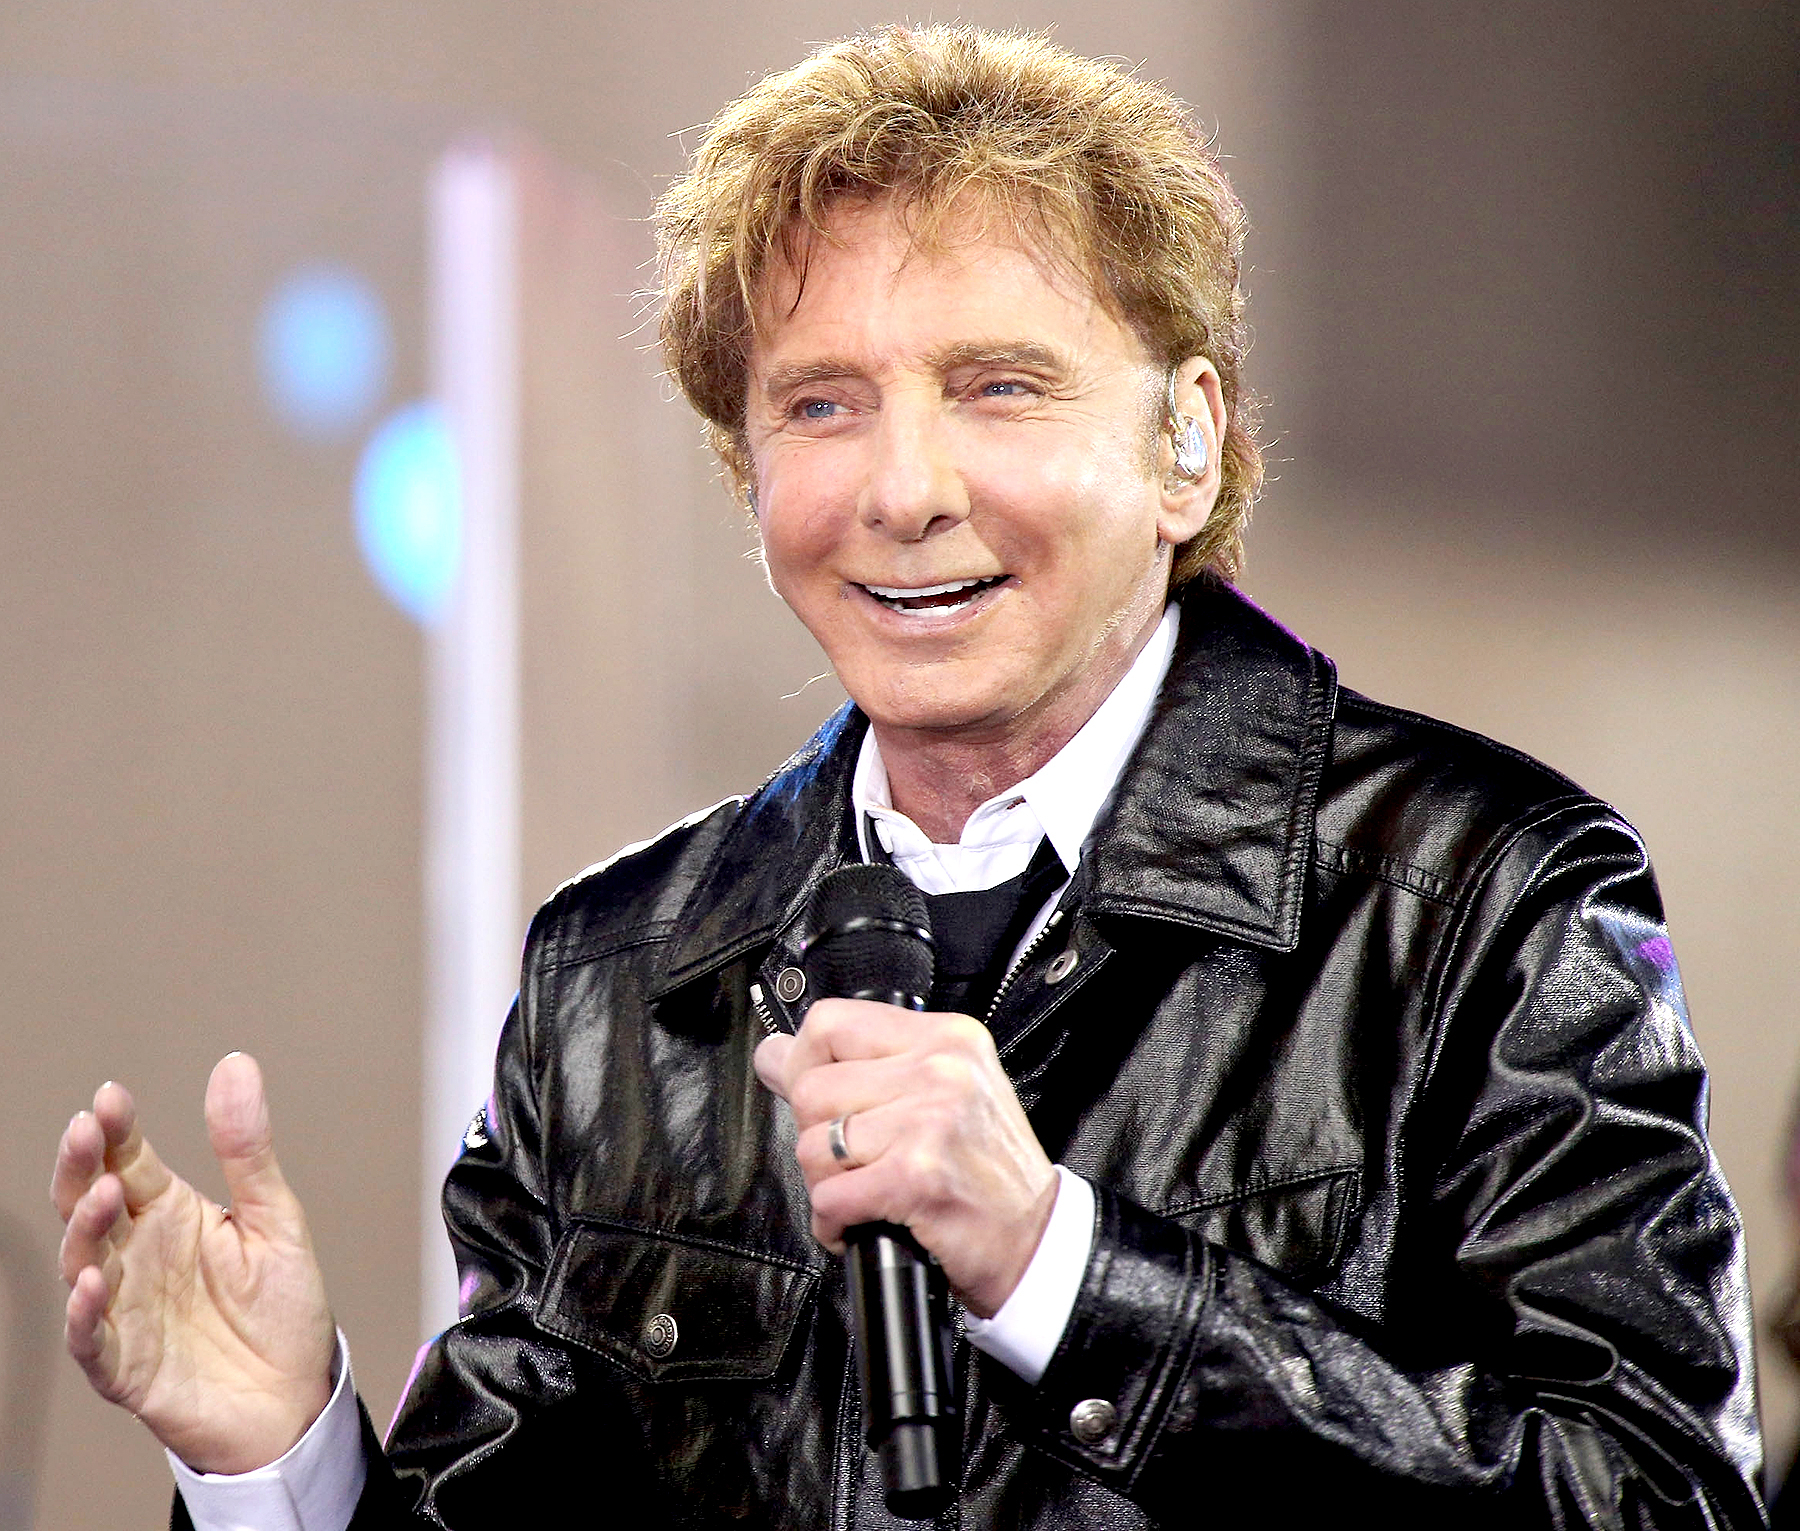 """Barry Manilow performs in the rain on NBC's """"Today"""" Show at Rockefeller Plaza on April 20, 2017 in New York City."""